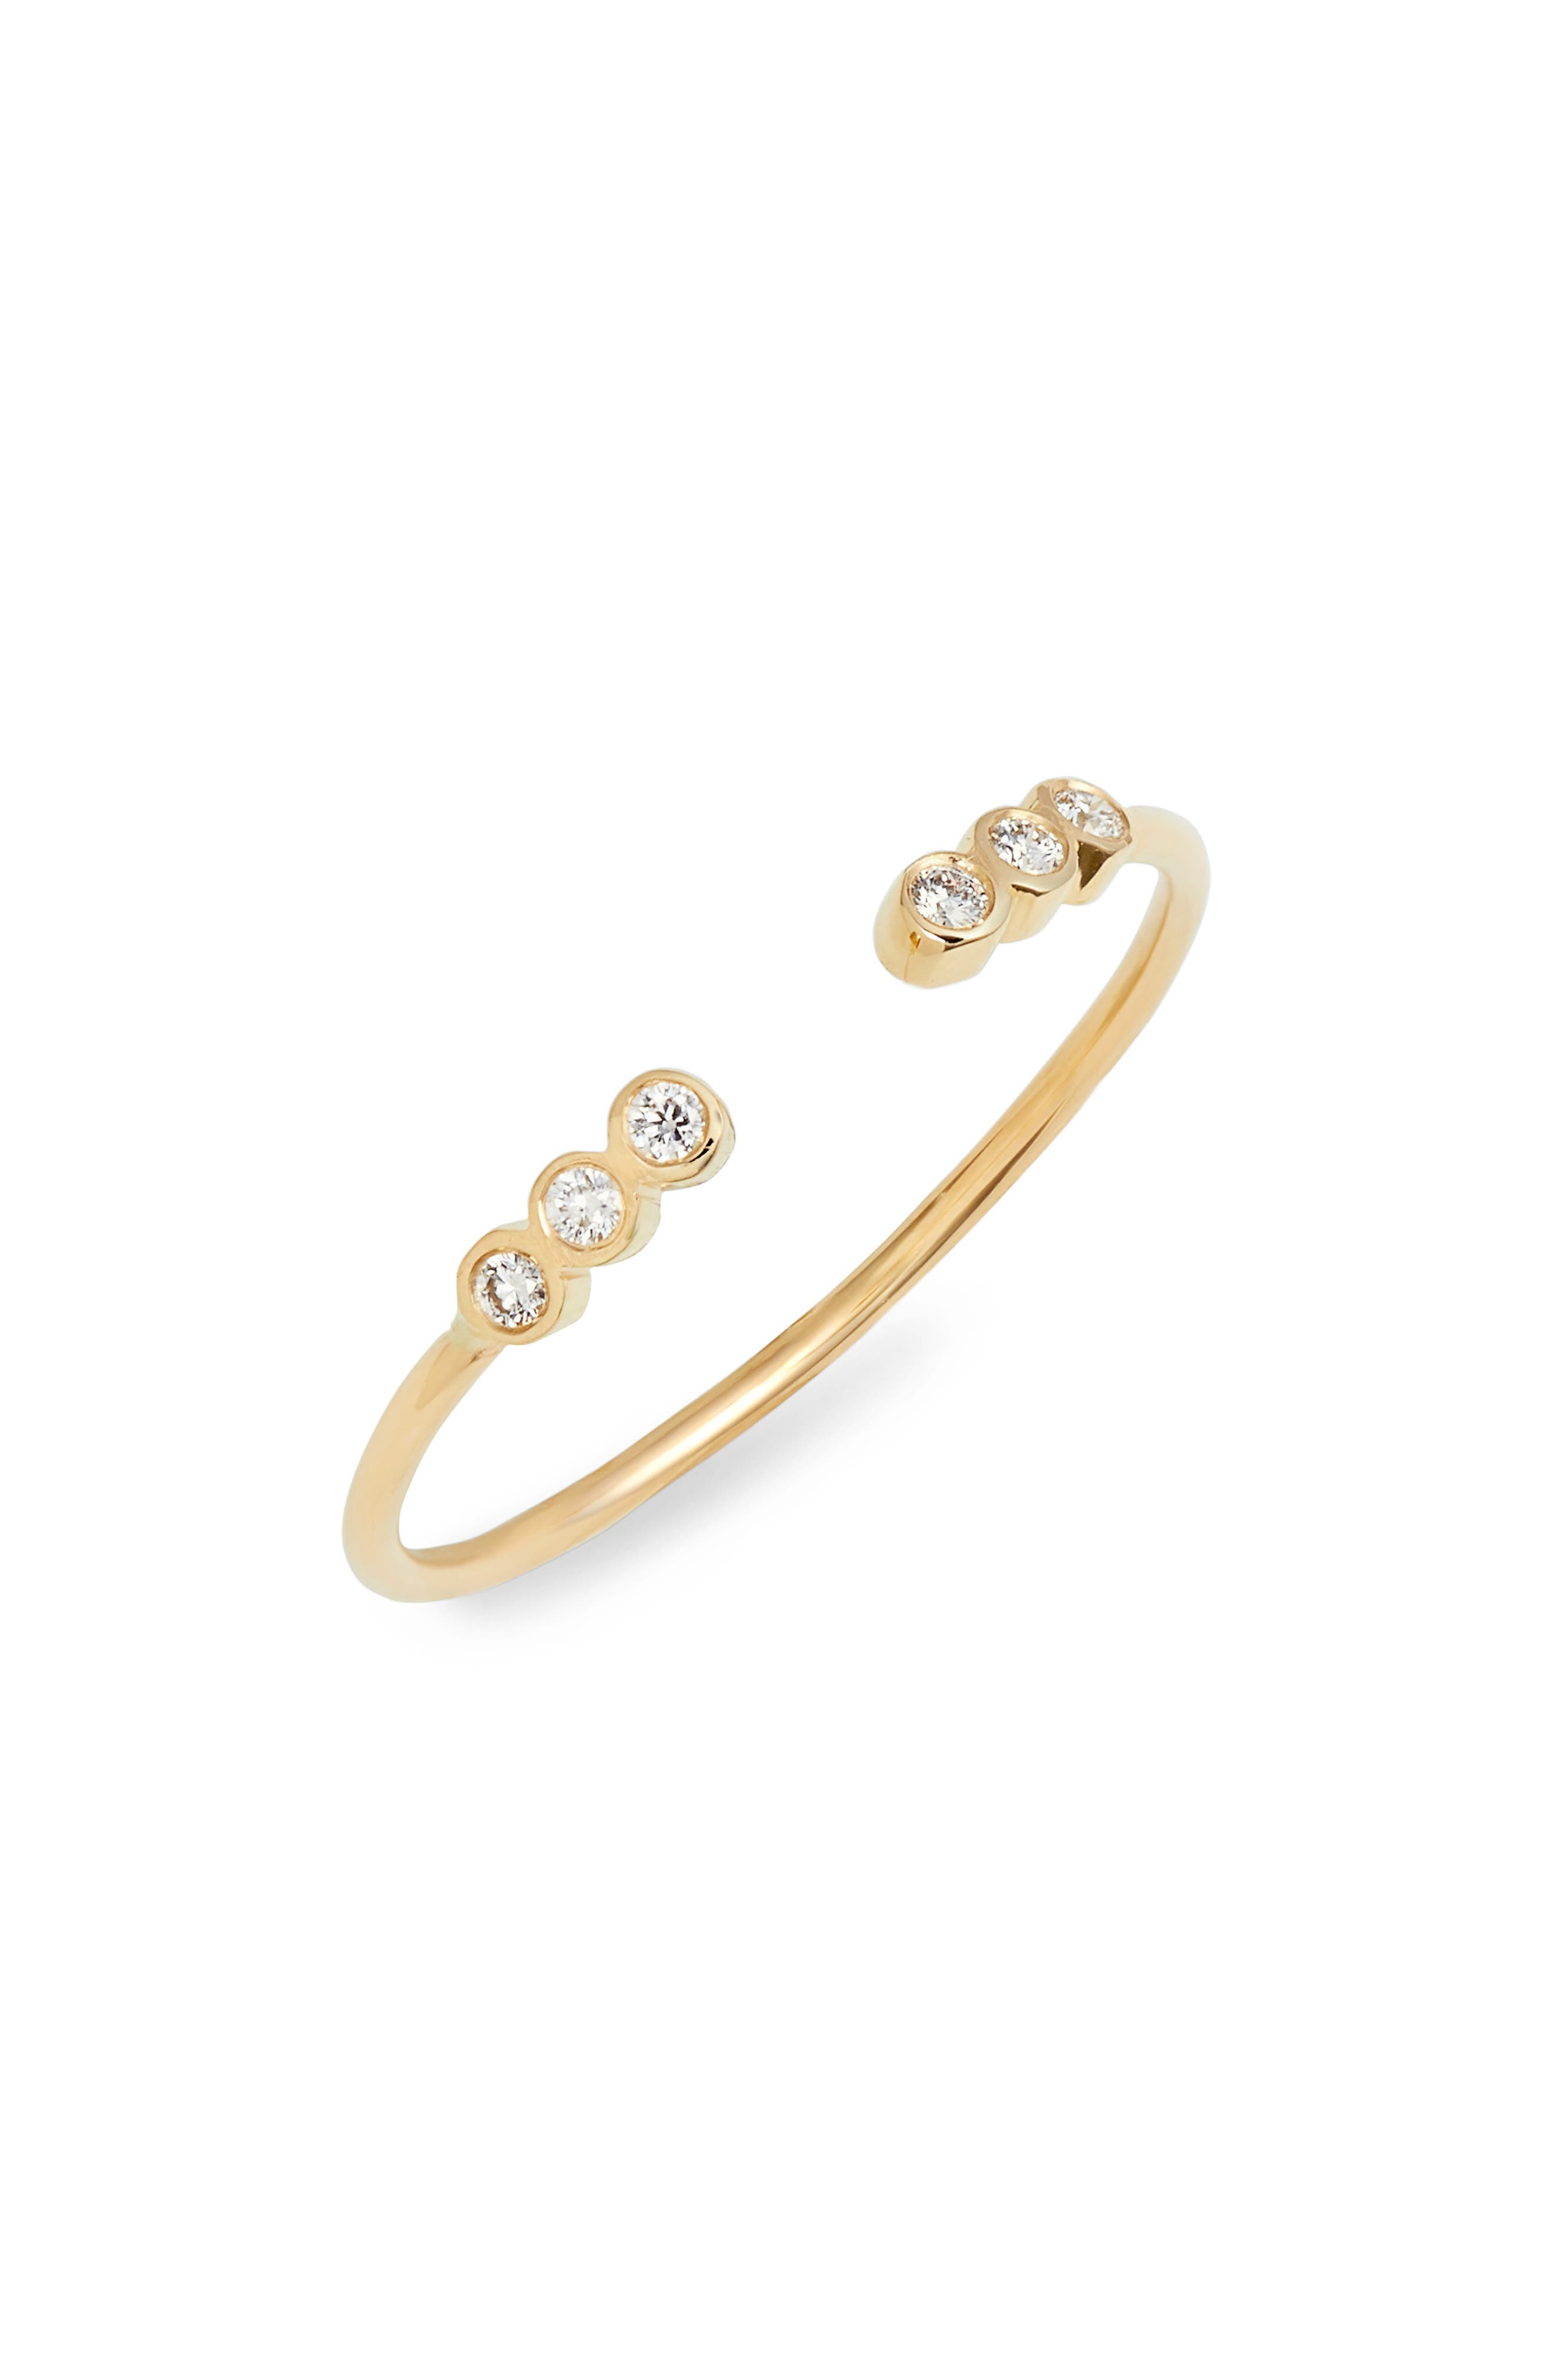 Six Diamond Bezel Open Stackable Ring,                         Main,                         color, Yellow Gold